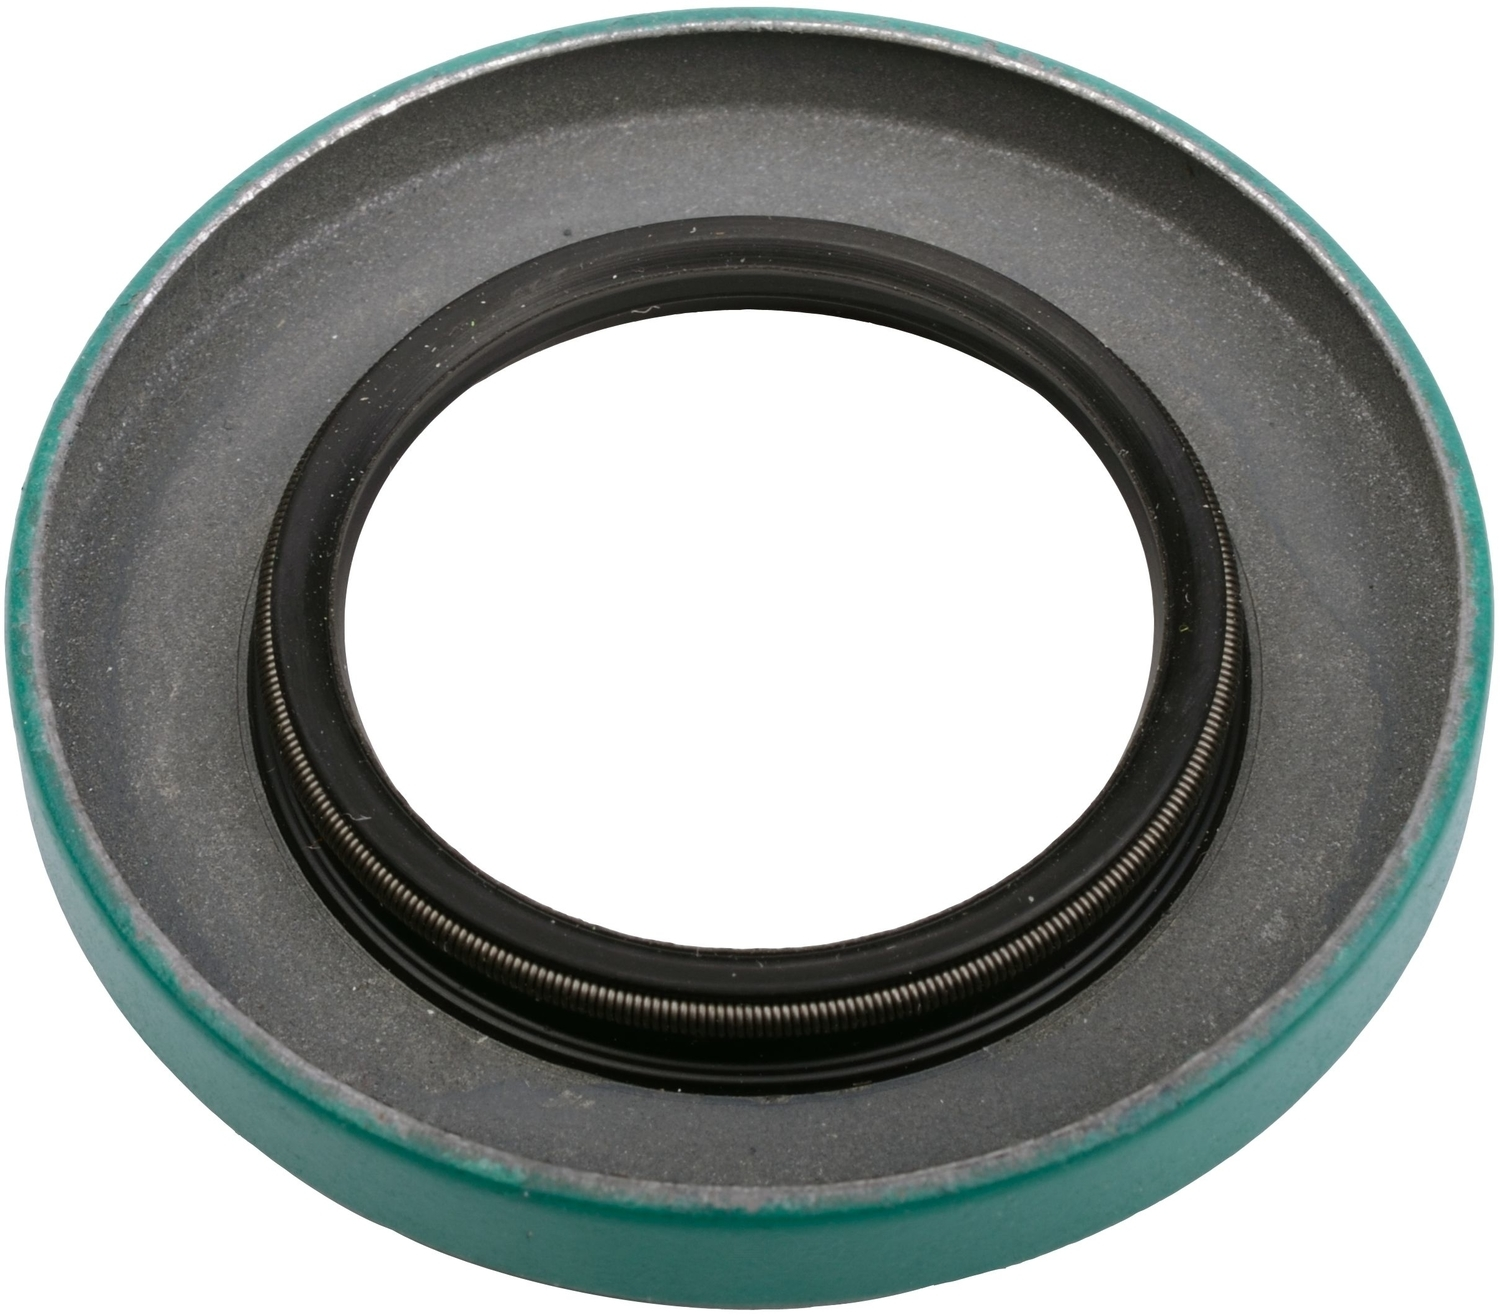 SKF (CHICAGO RAWHIDE) - Manual Trans Input Shaft Seal - SKF 14704